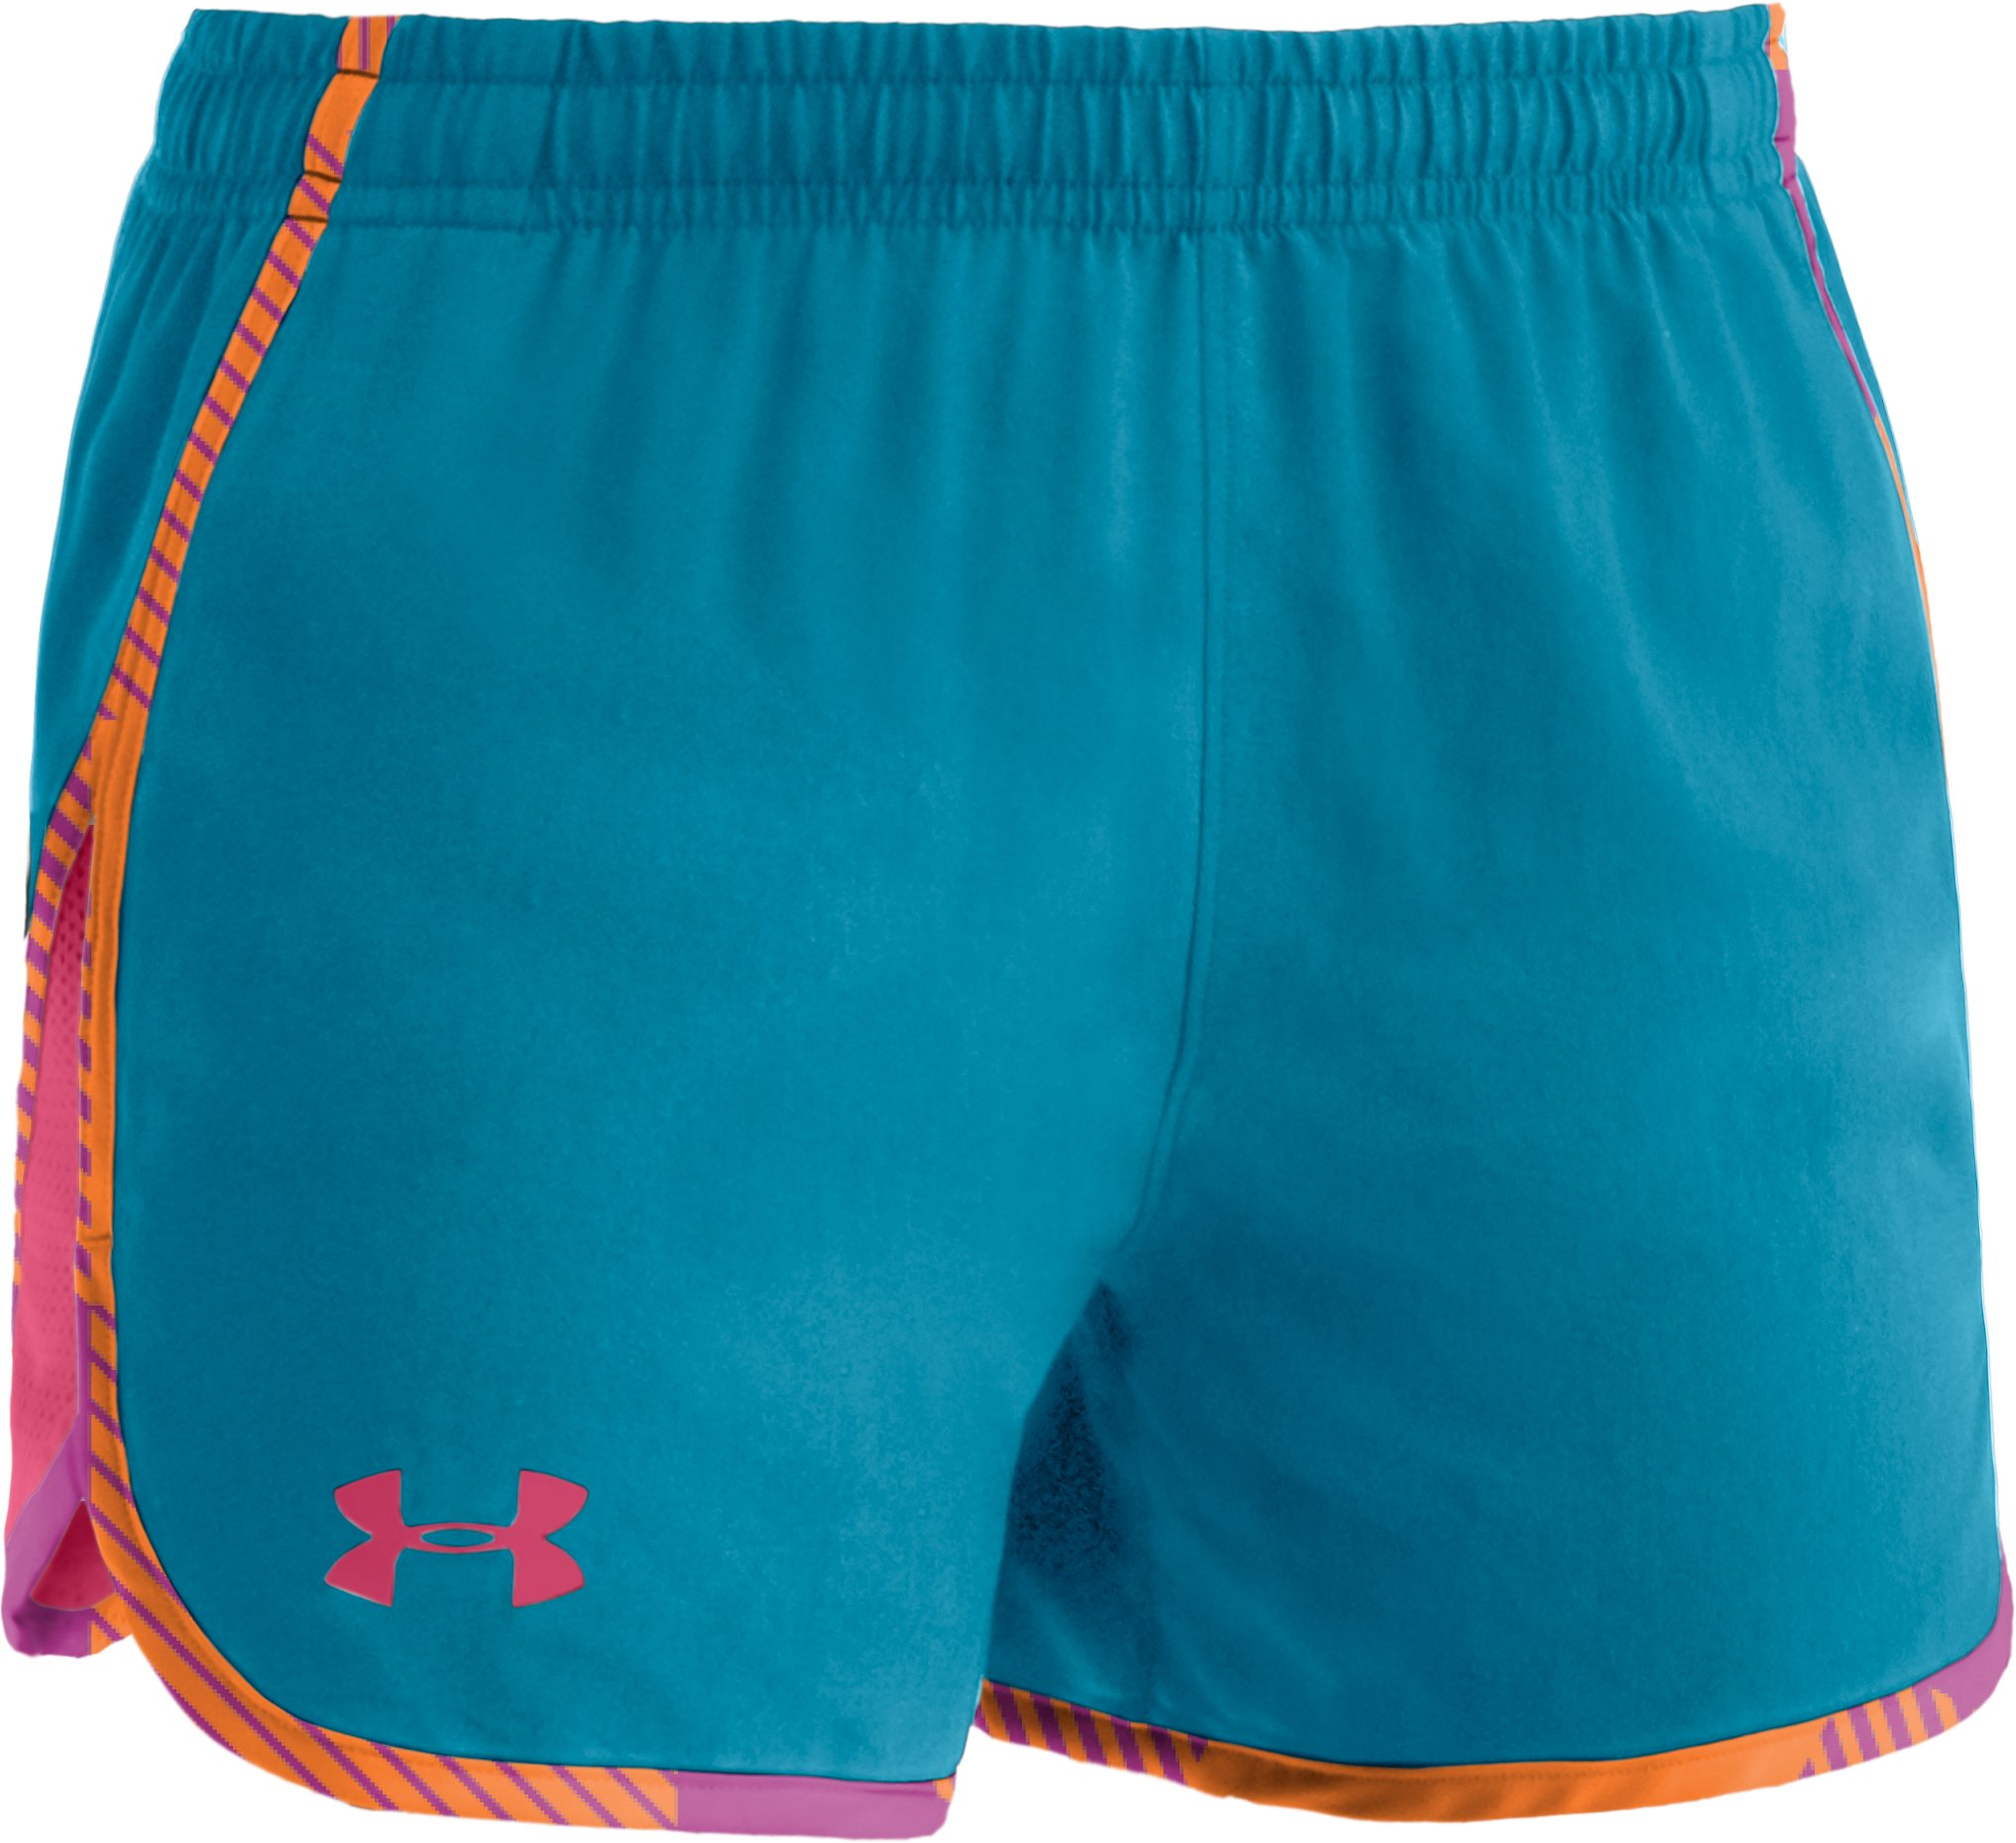 "Girls' UA Escape 3"" Shorts, Break, zoomed image"